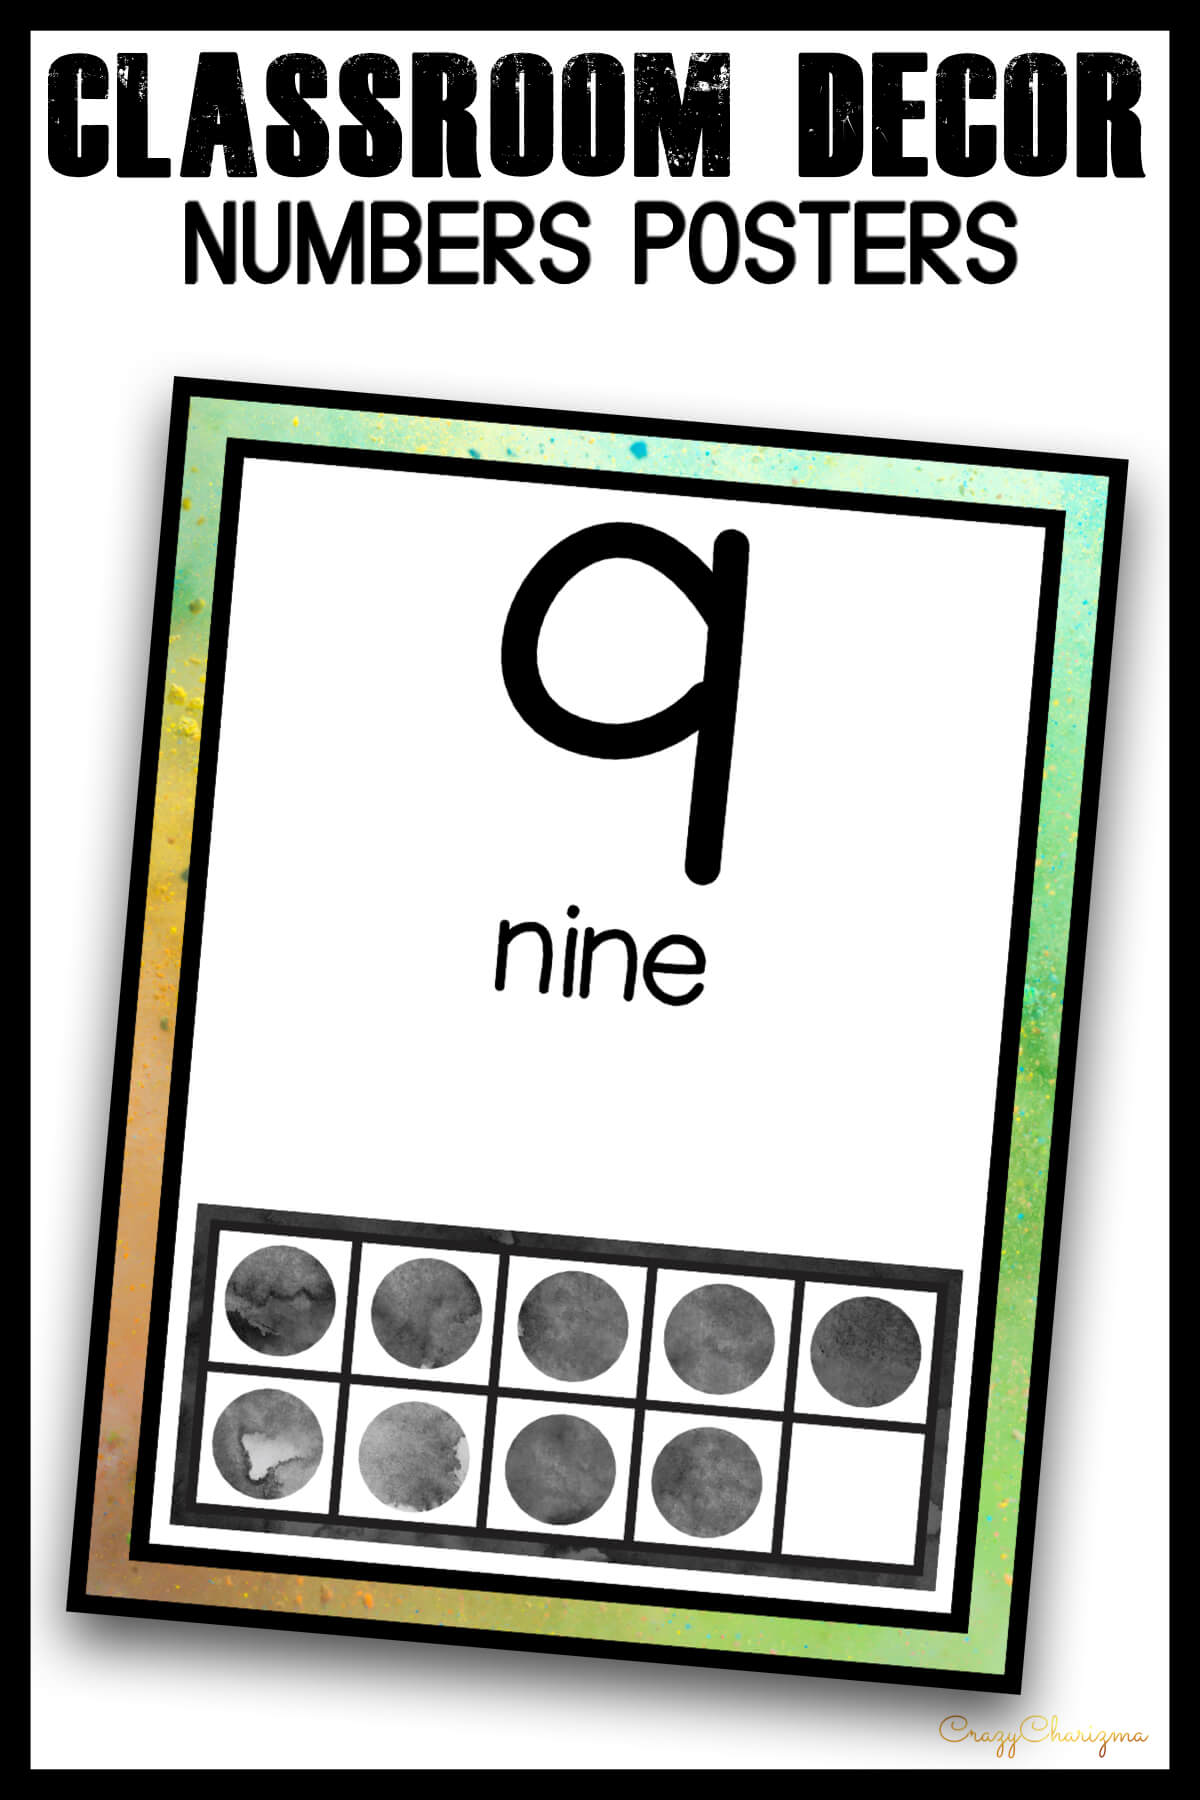 Looking for bright and clear numbers posters? Spice your classroom with this visually appealing classroom decor!